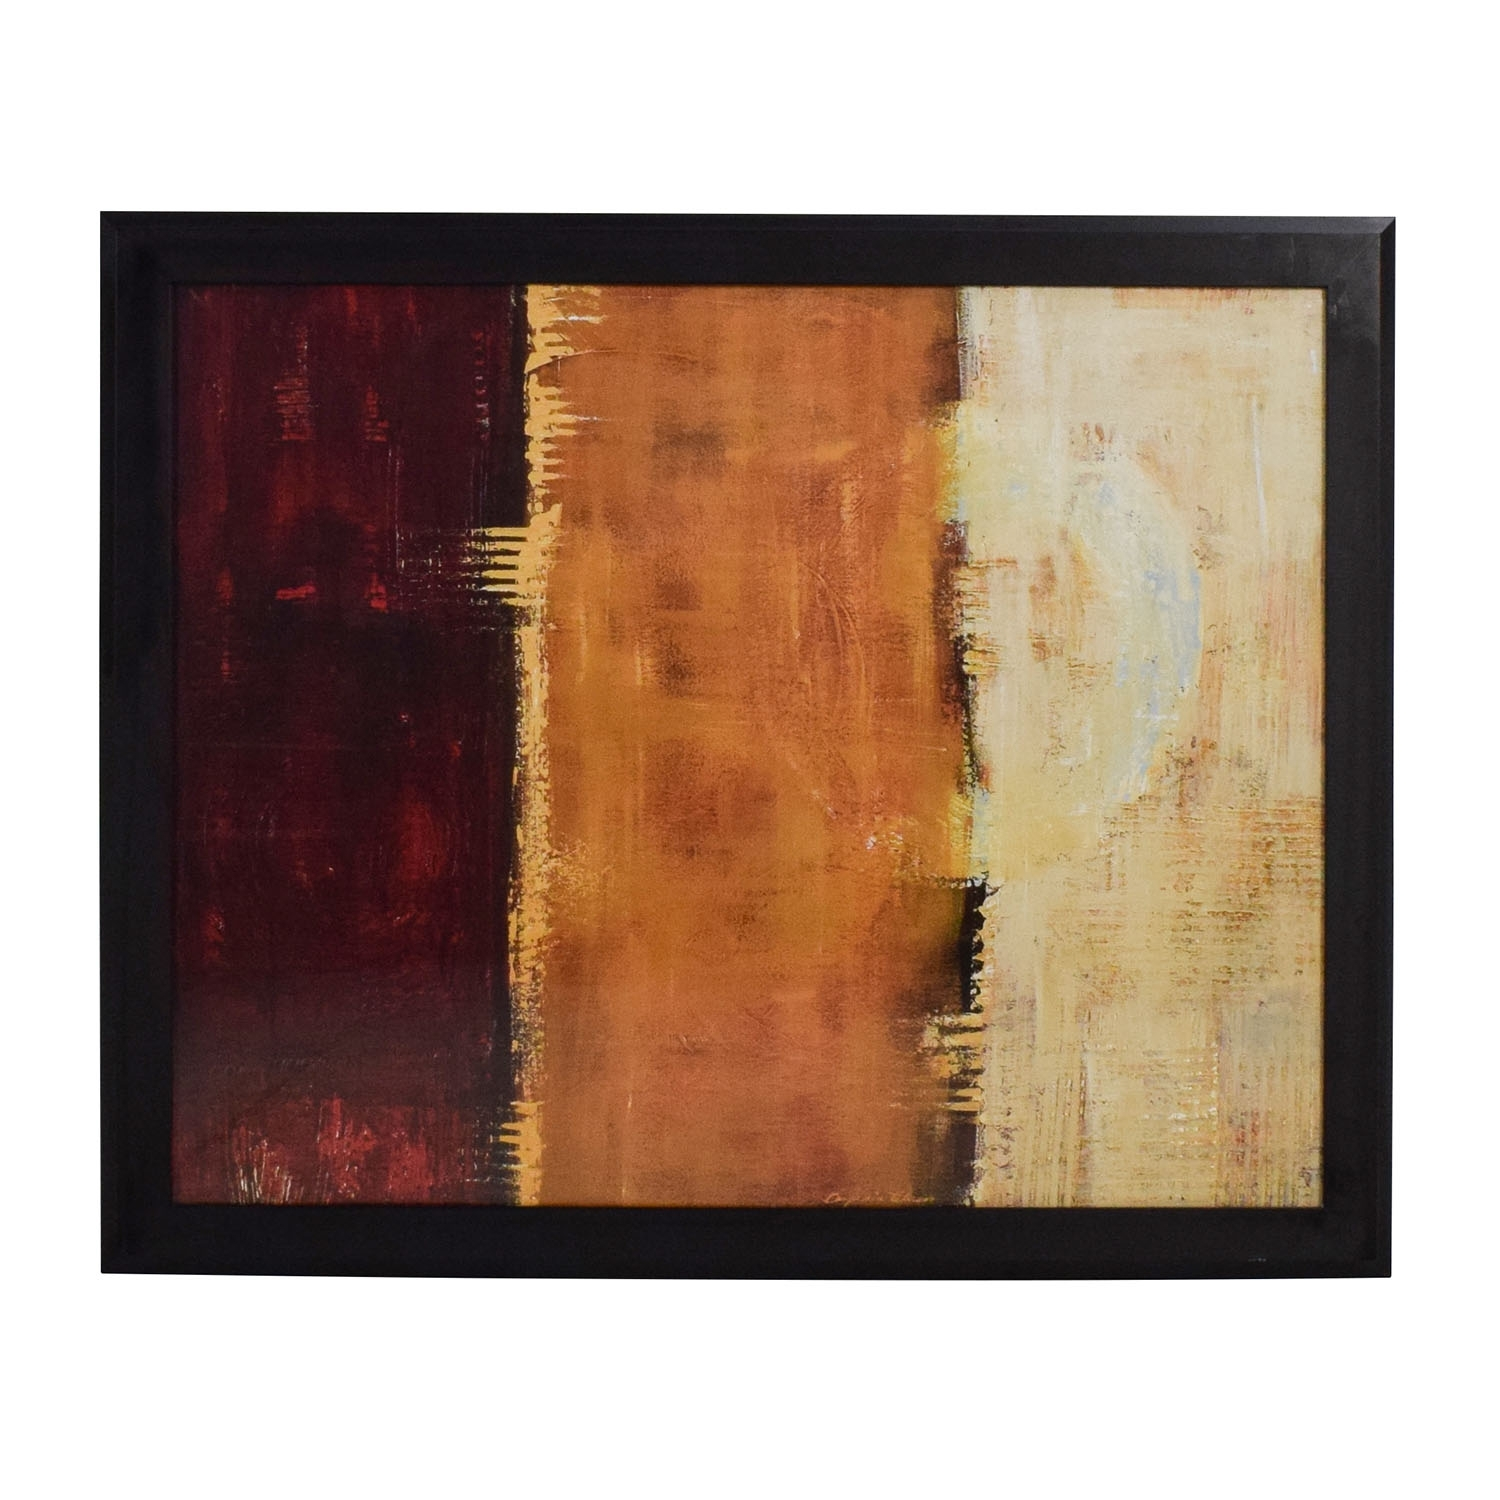 88% Off – Z Gallerie Z Gallerie Framed Canvas Red Orange Yellow Wall With Regard To Latest Z Gallerie Wall Art (View 2 of 15)